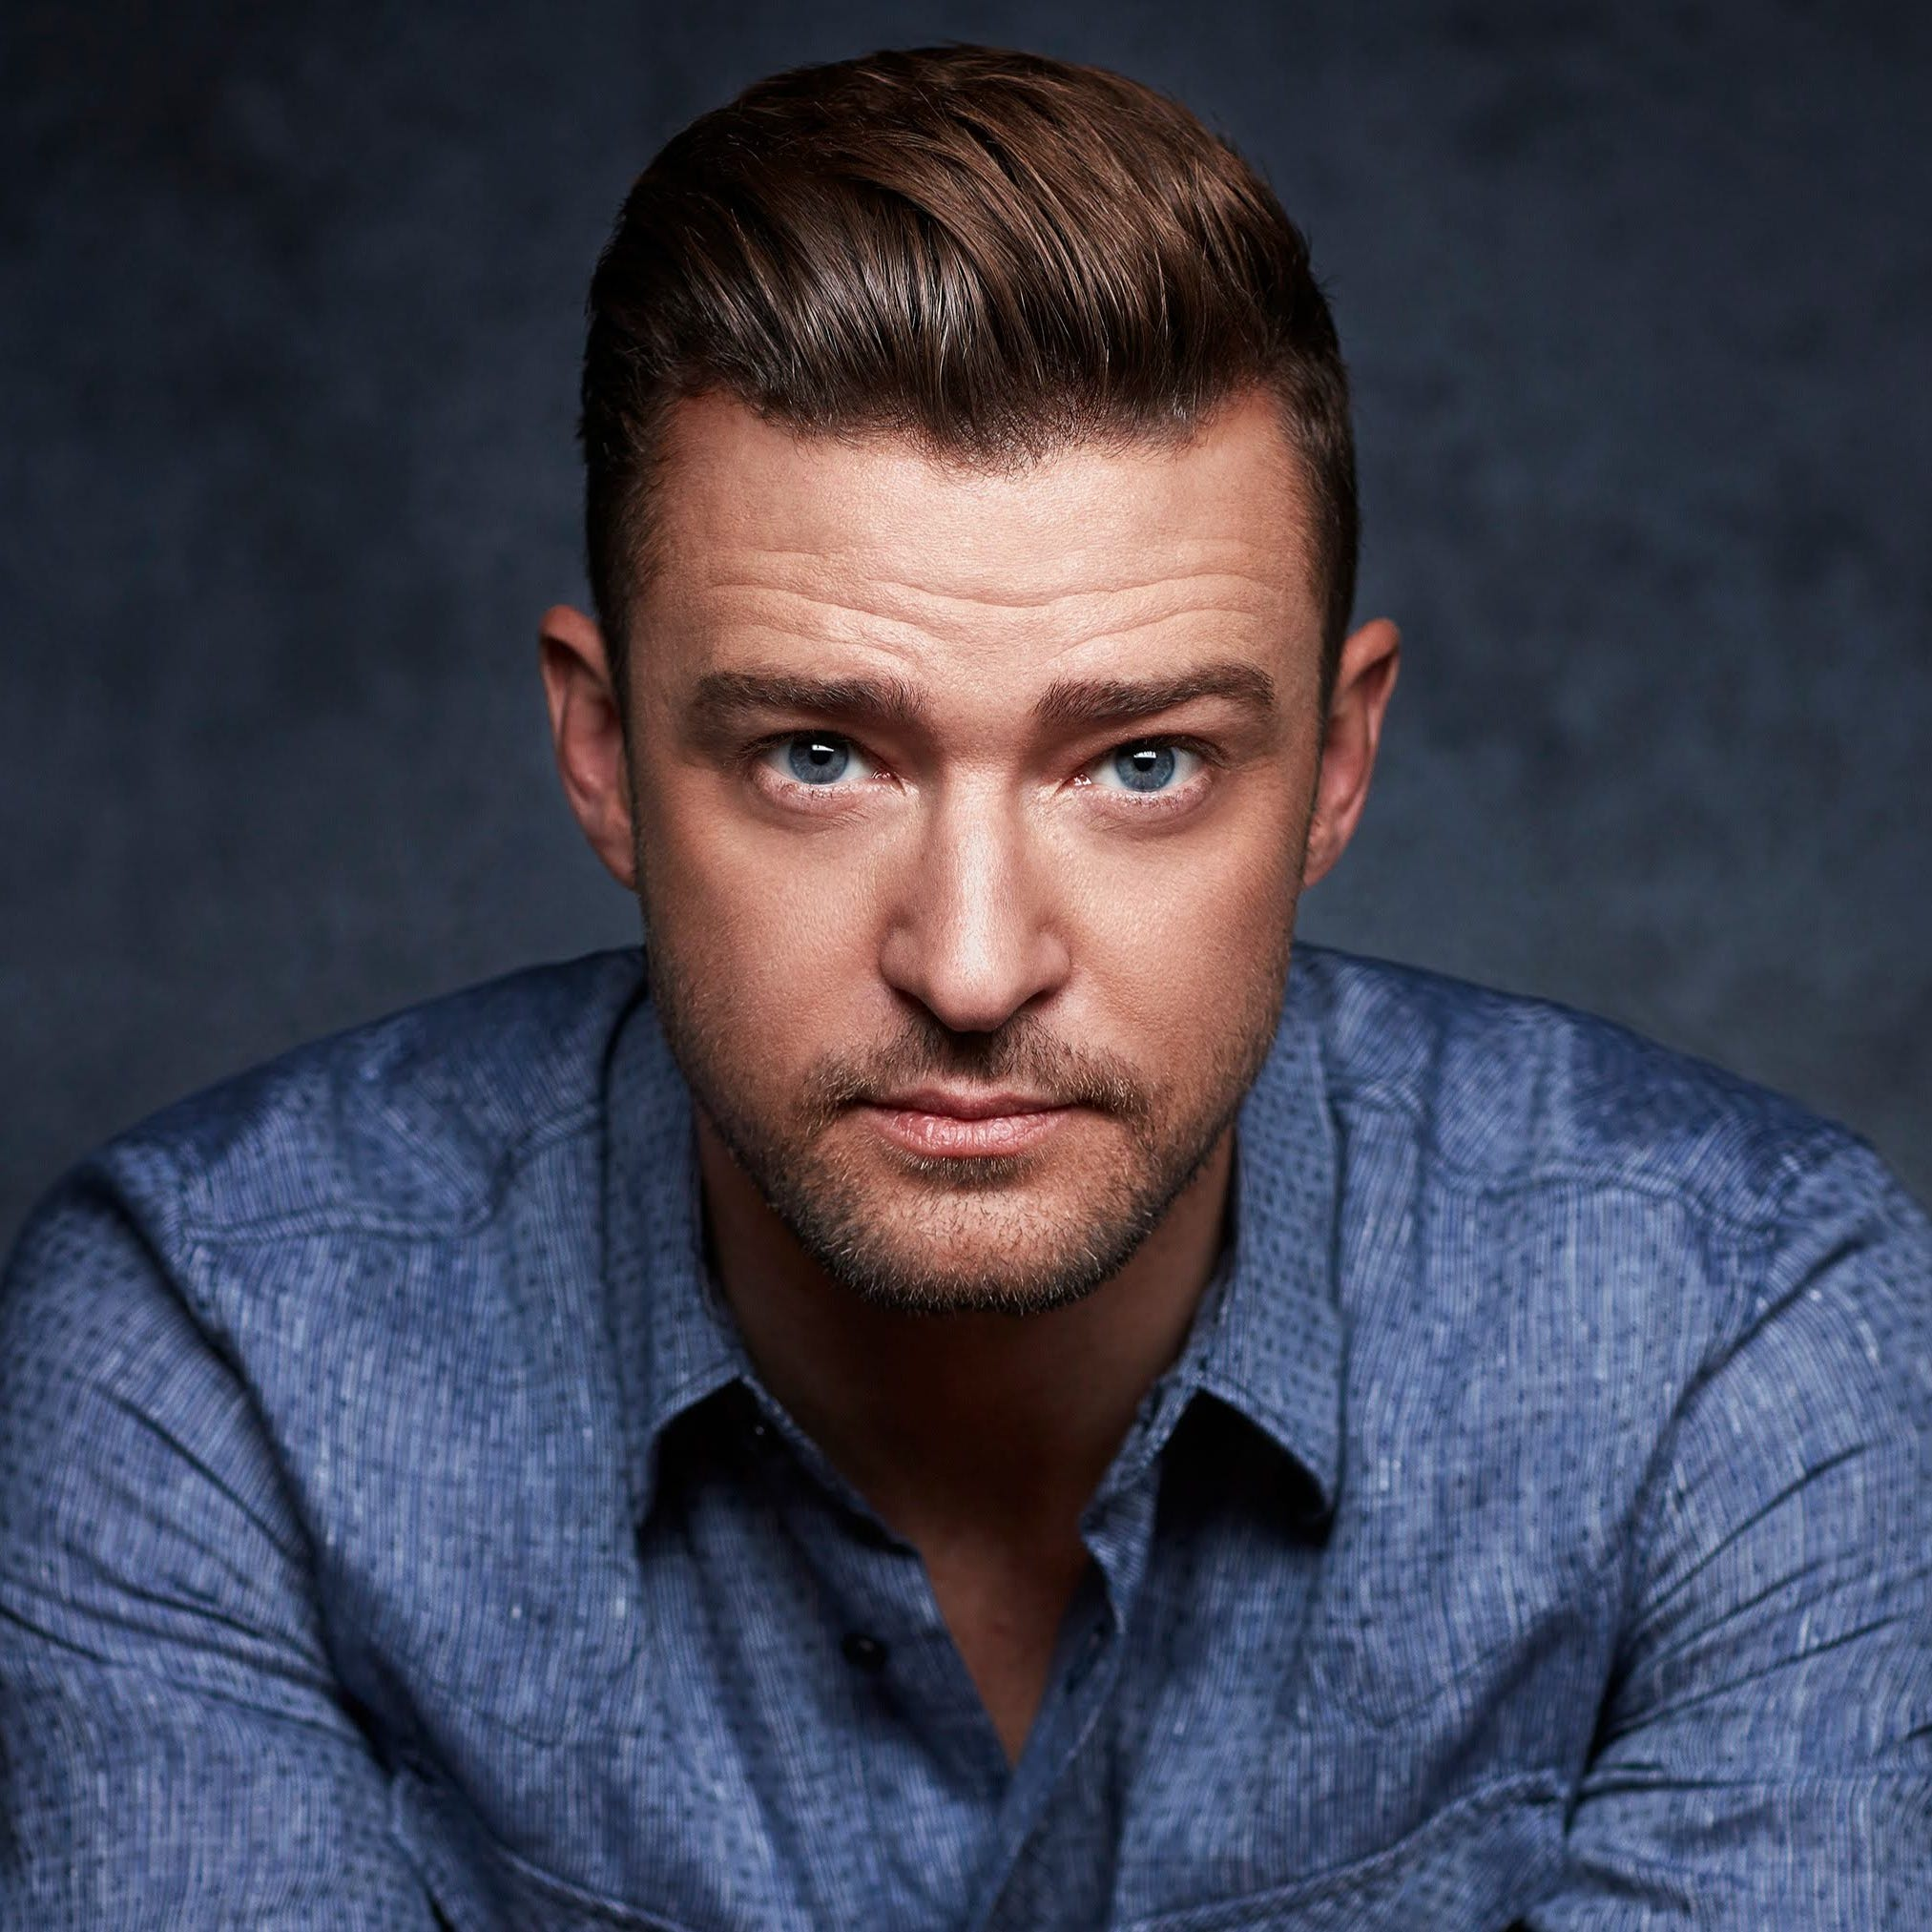 Justin Timberlake in Indianapolis: What you need to know